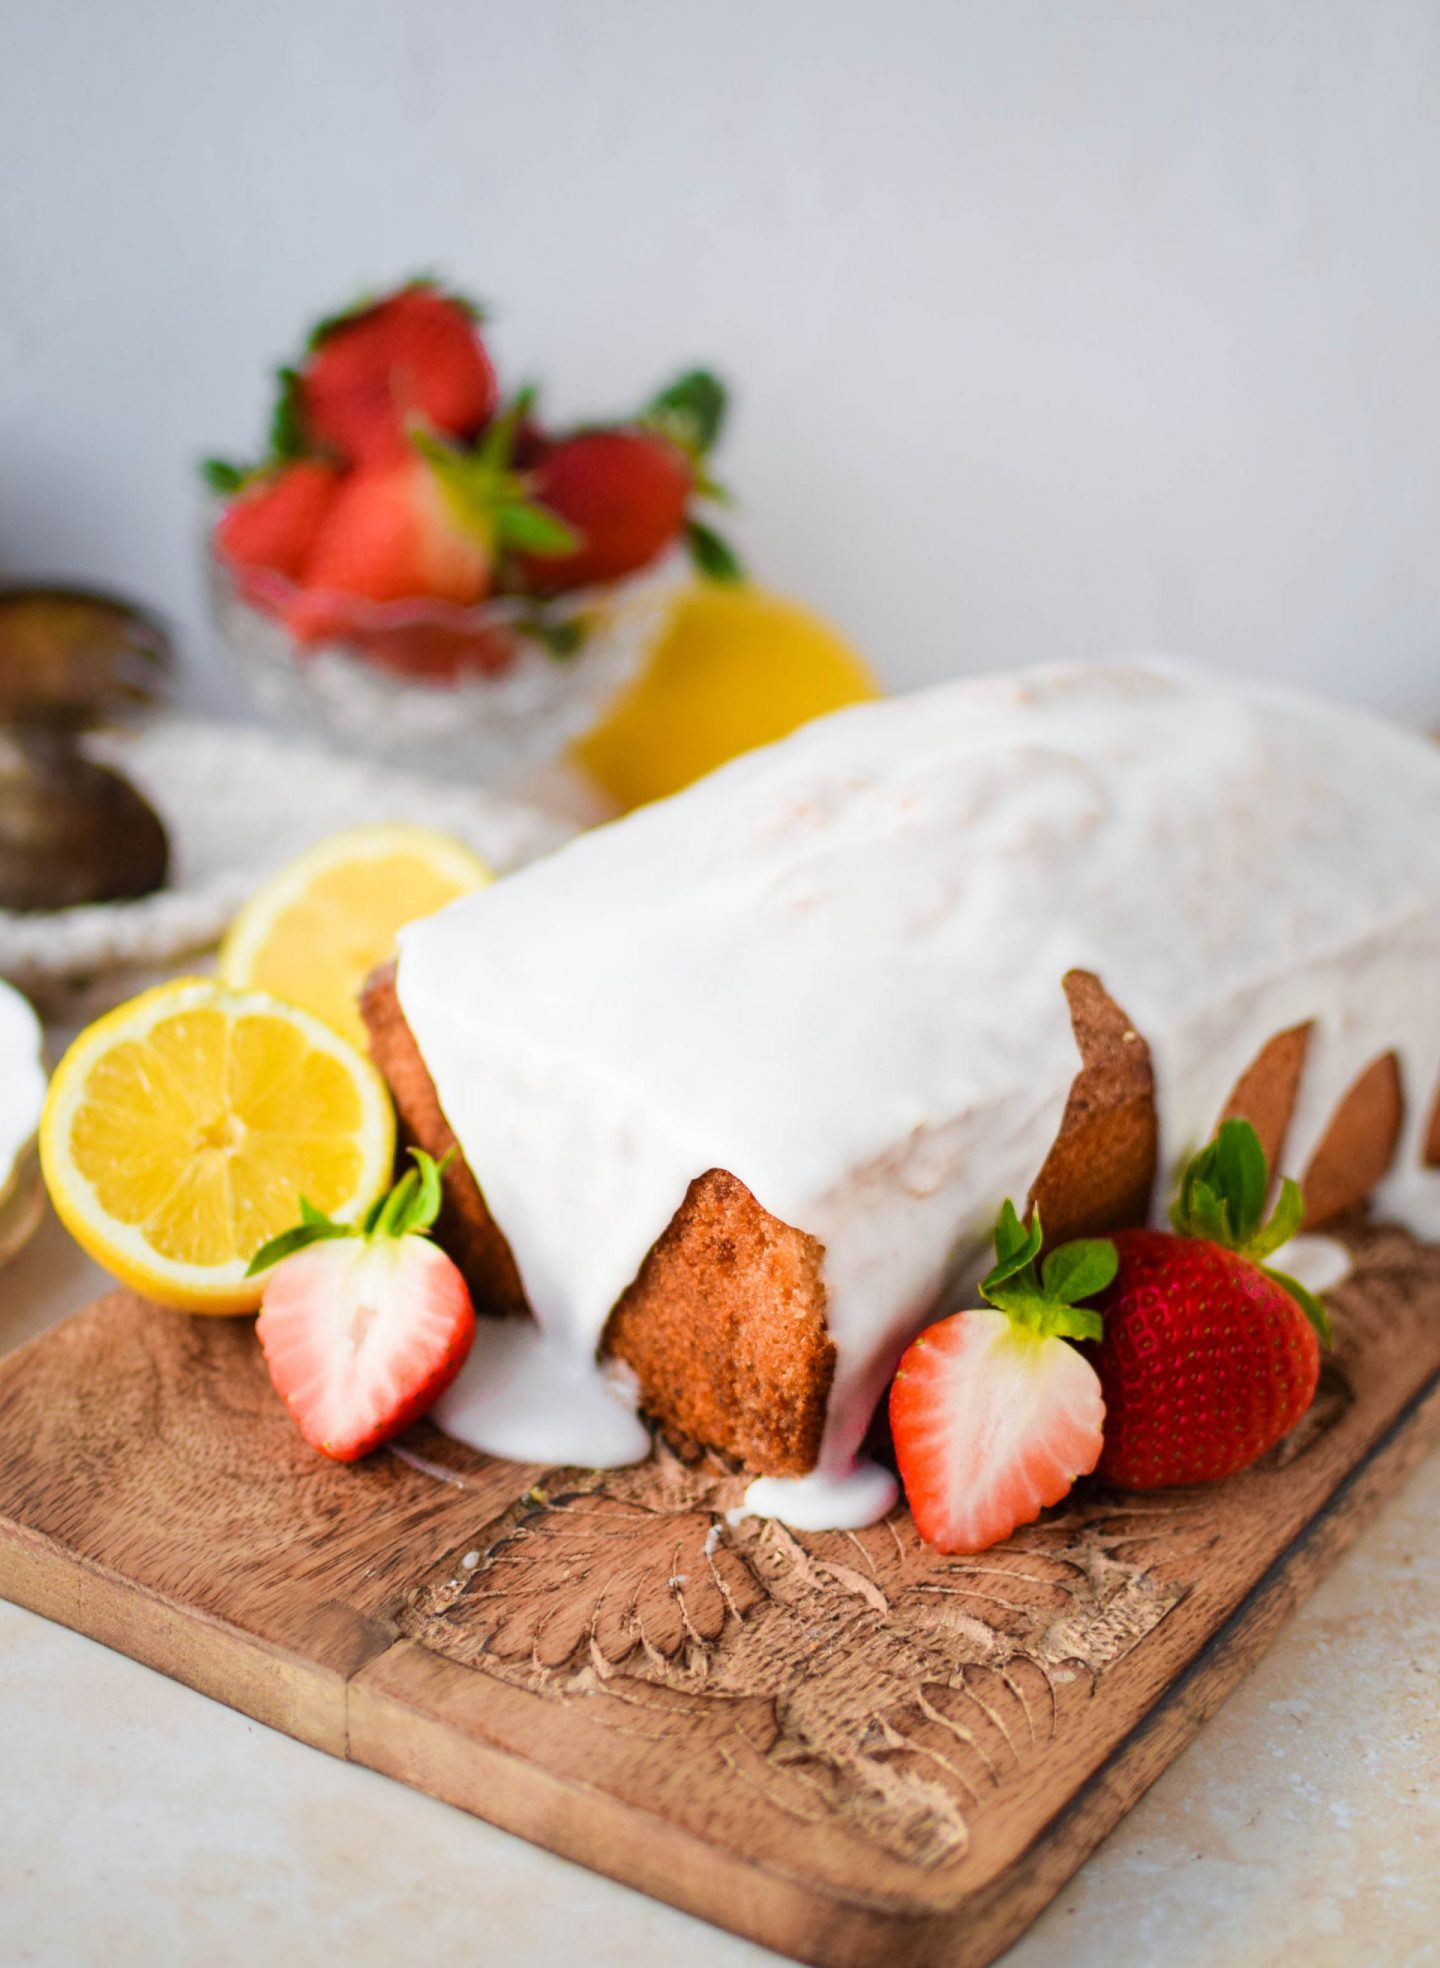 Lemon drizzle cake on a decorative board with some strawberries.